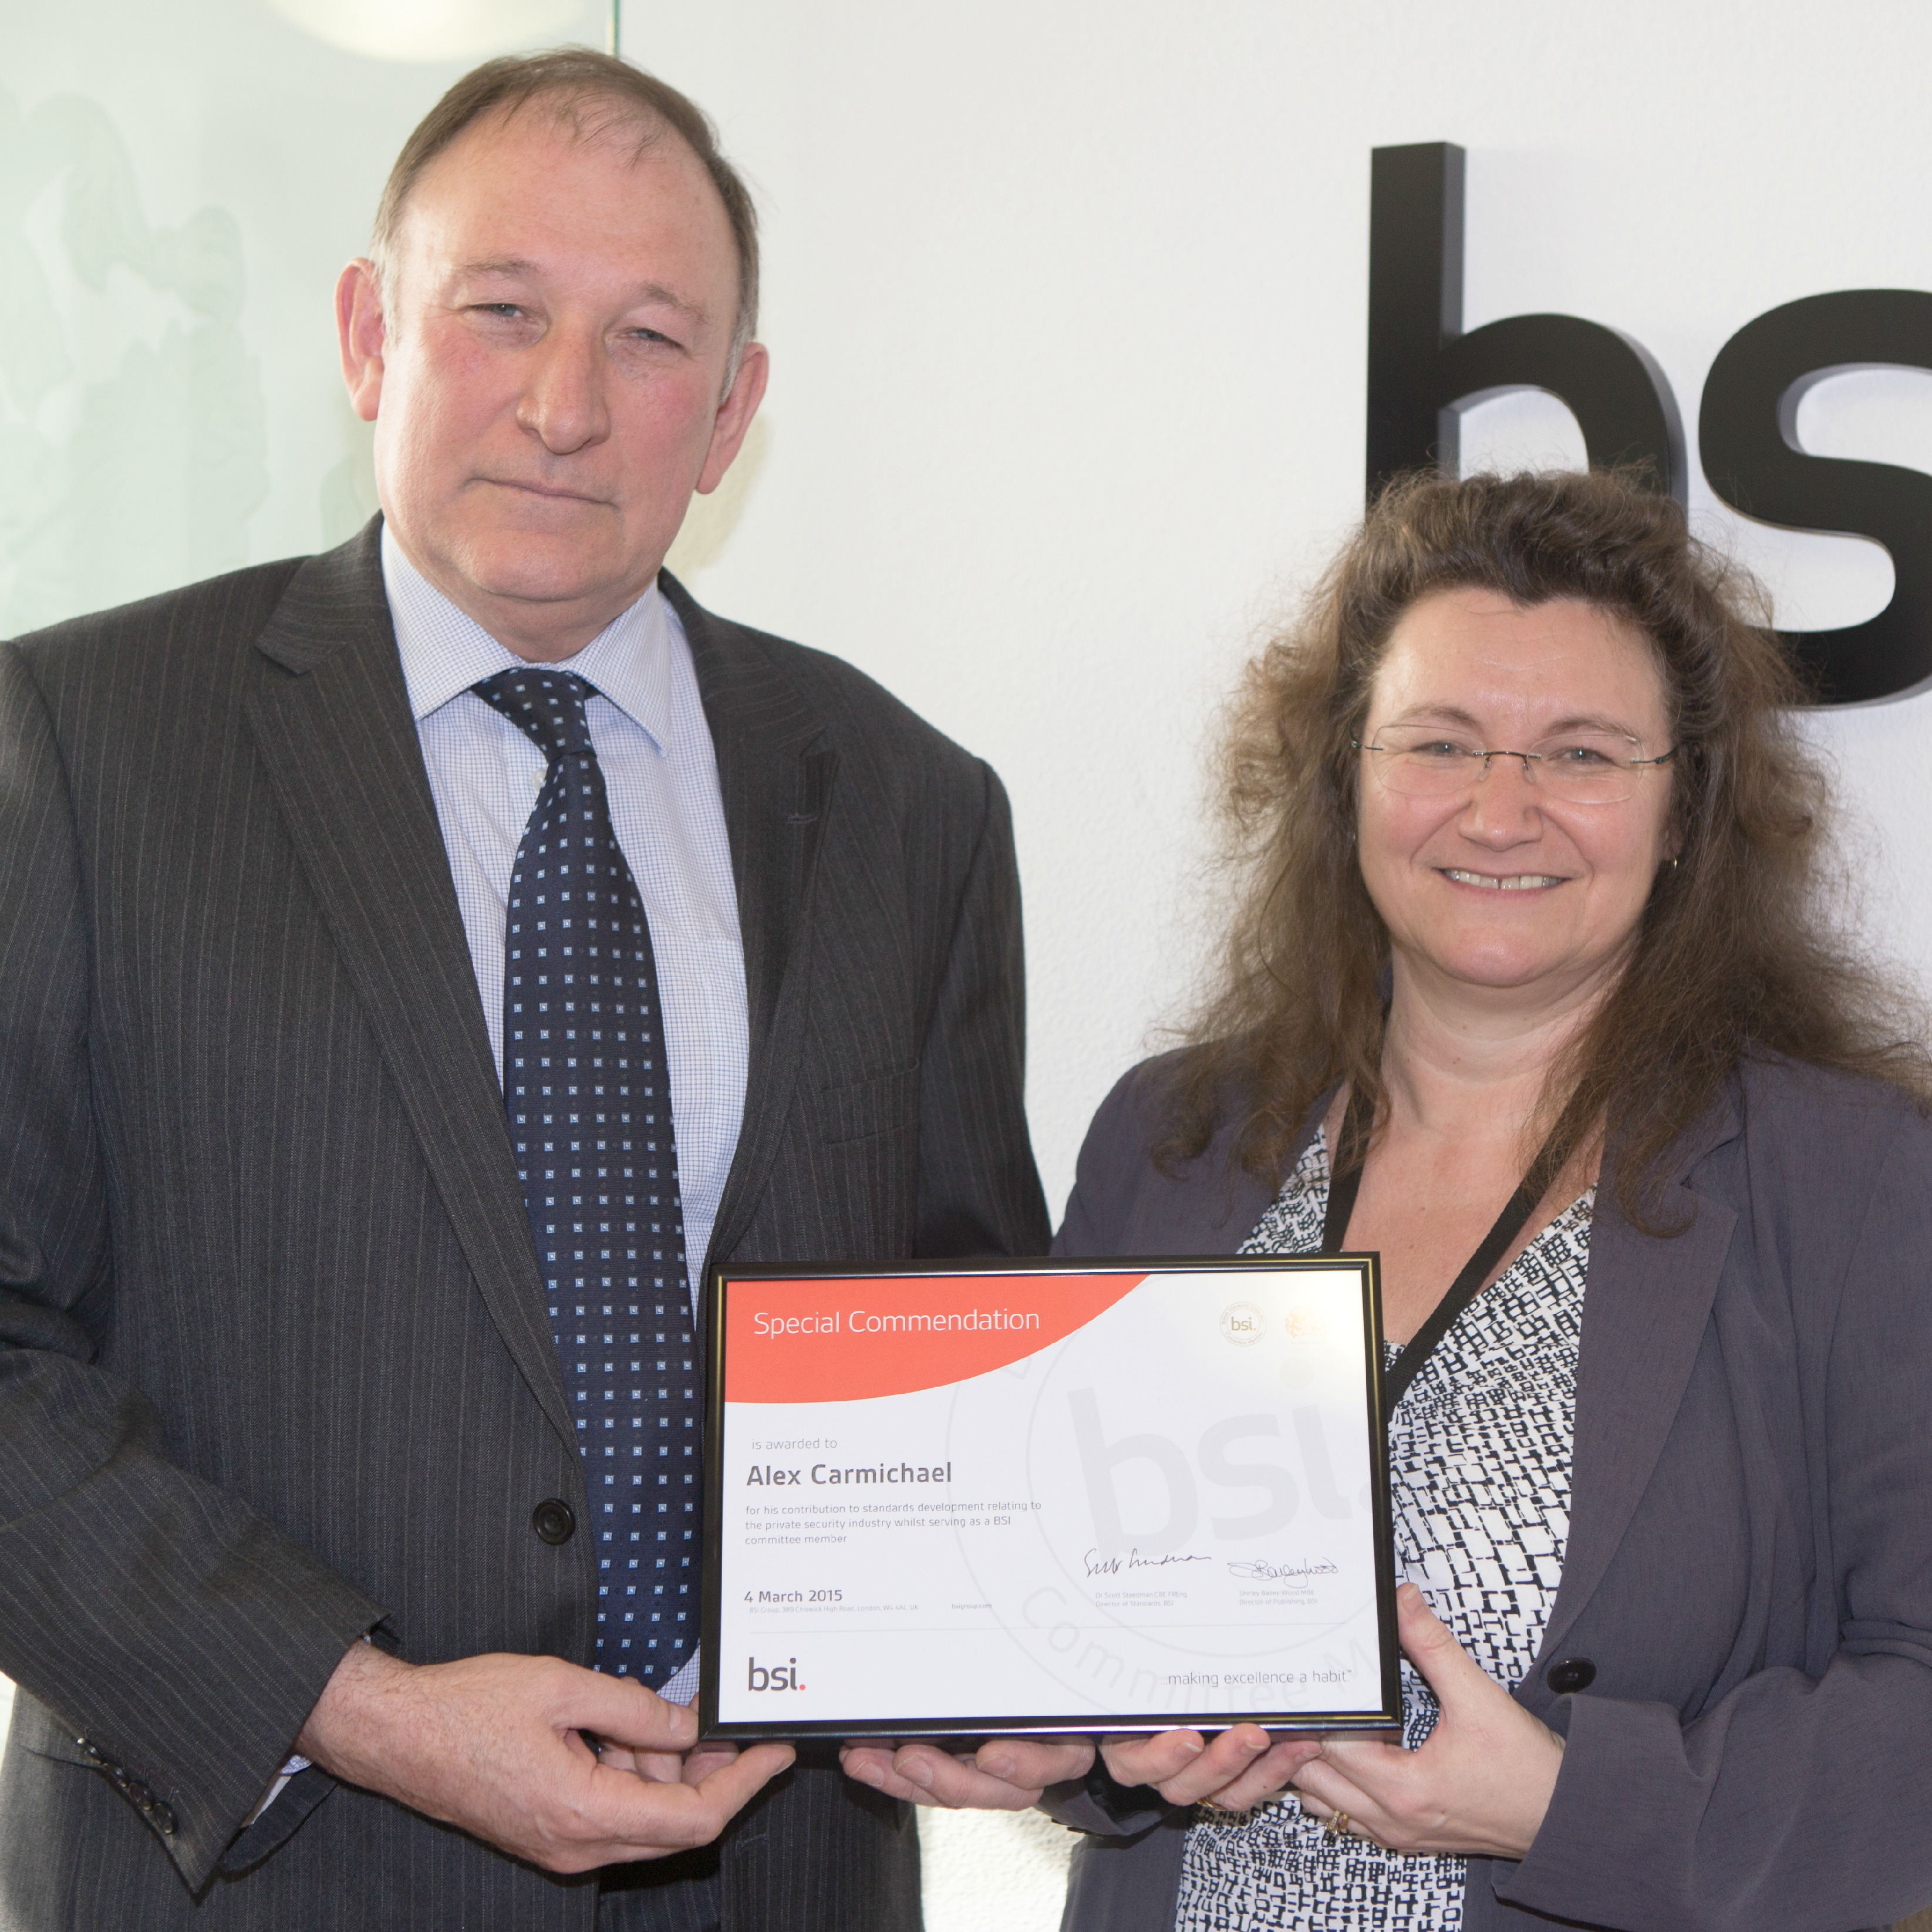 Alex Carmichael (left) receives his award from Debbie Stead, BSI